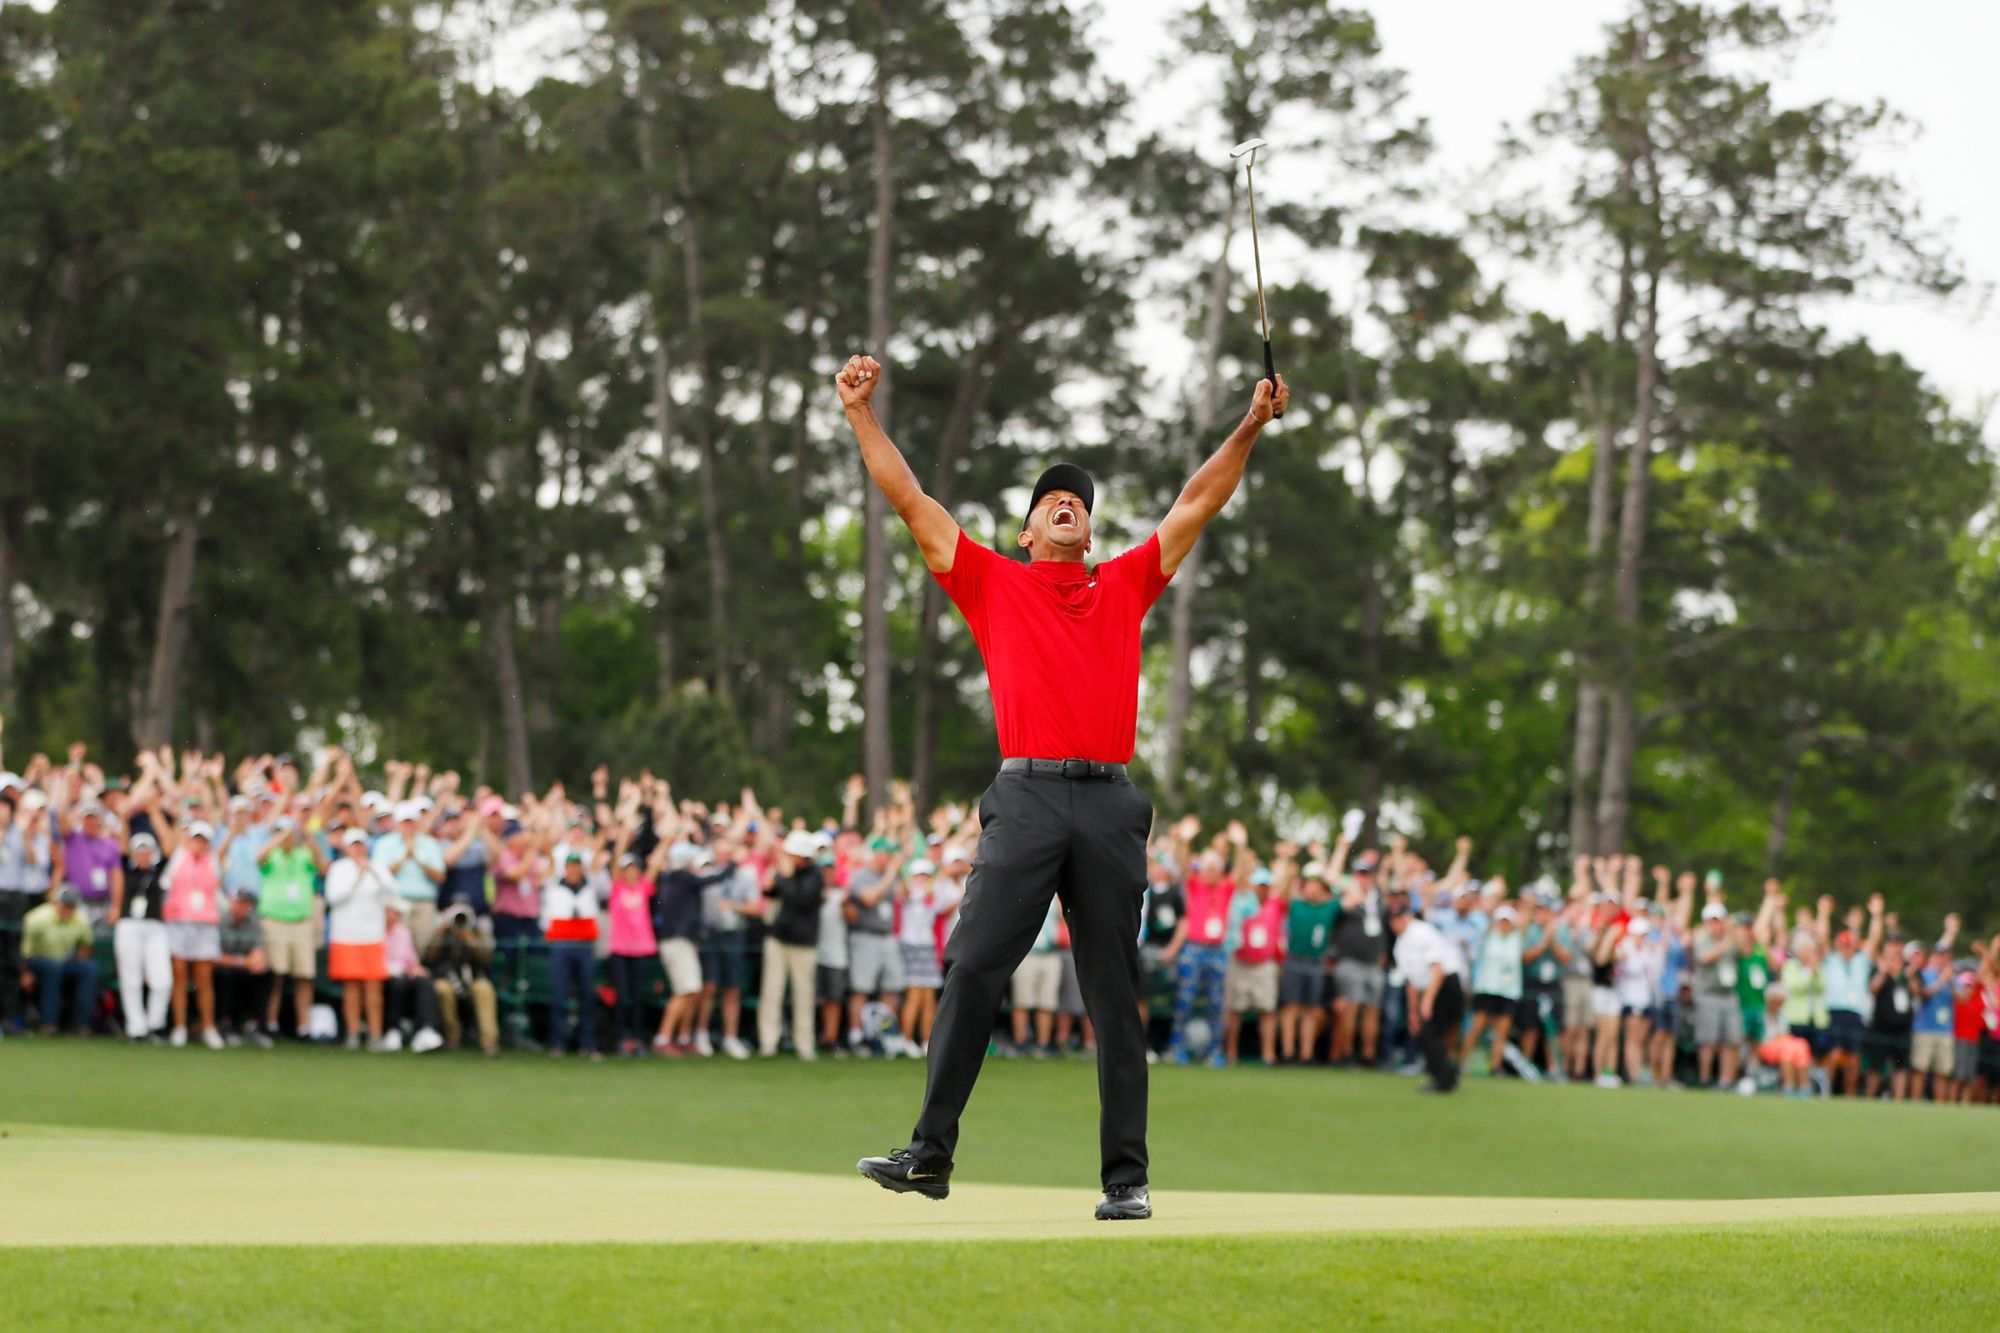 Business Lessons From Tiger Woods' Triumph at the Masters